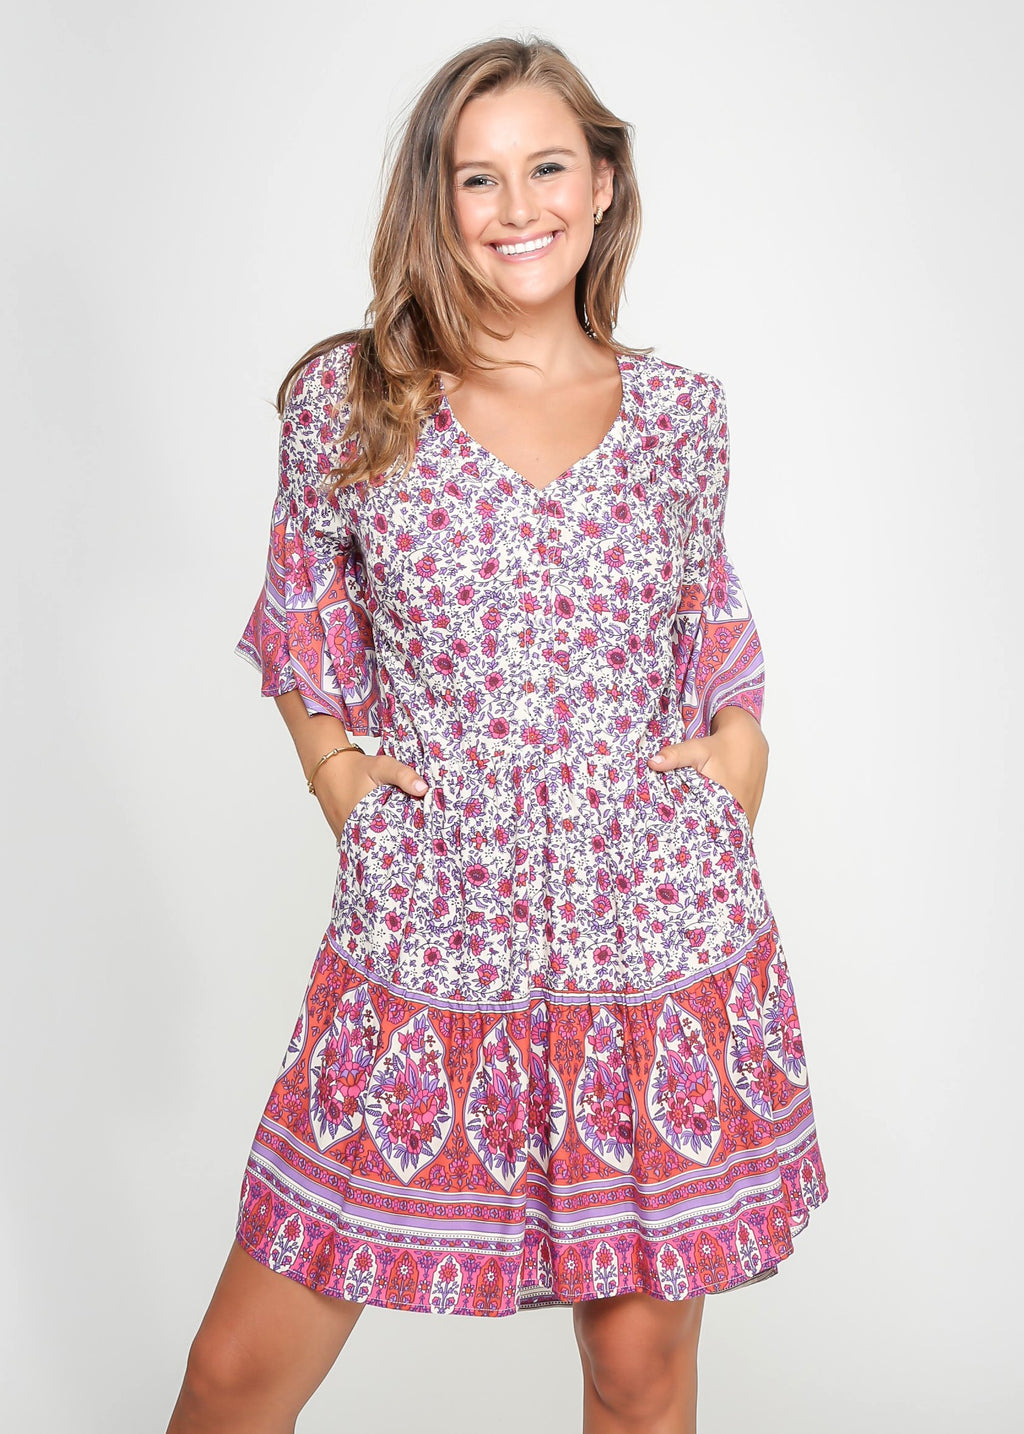 FRANCES DRESS - FUSHIA PRINT